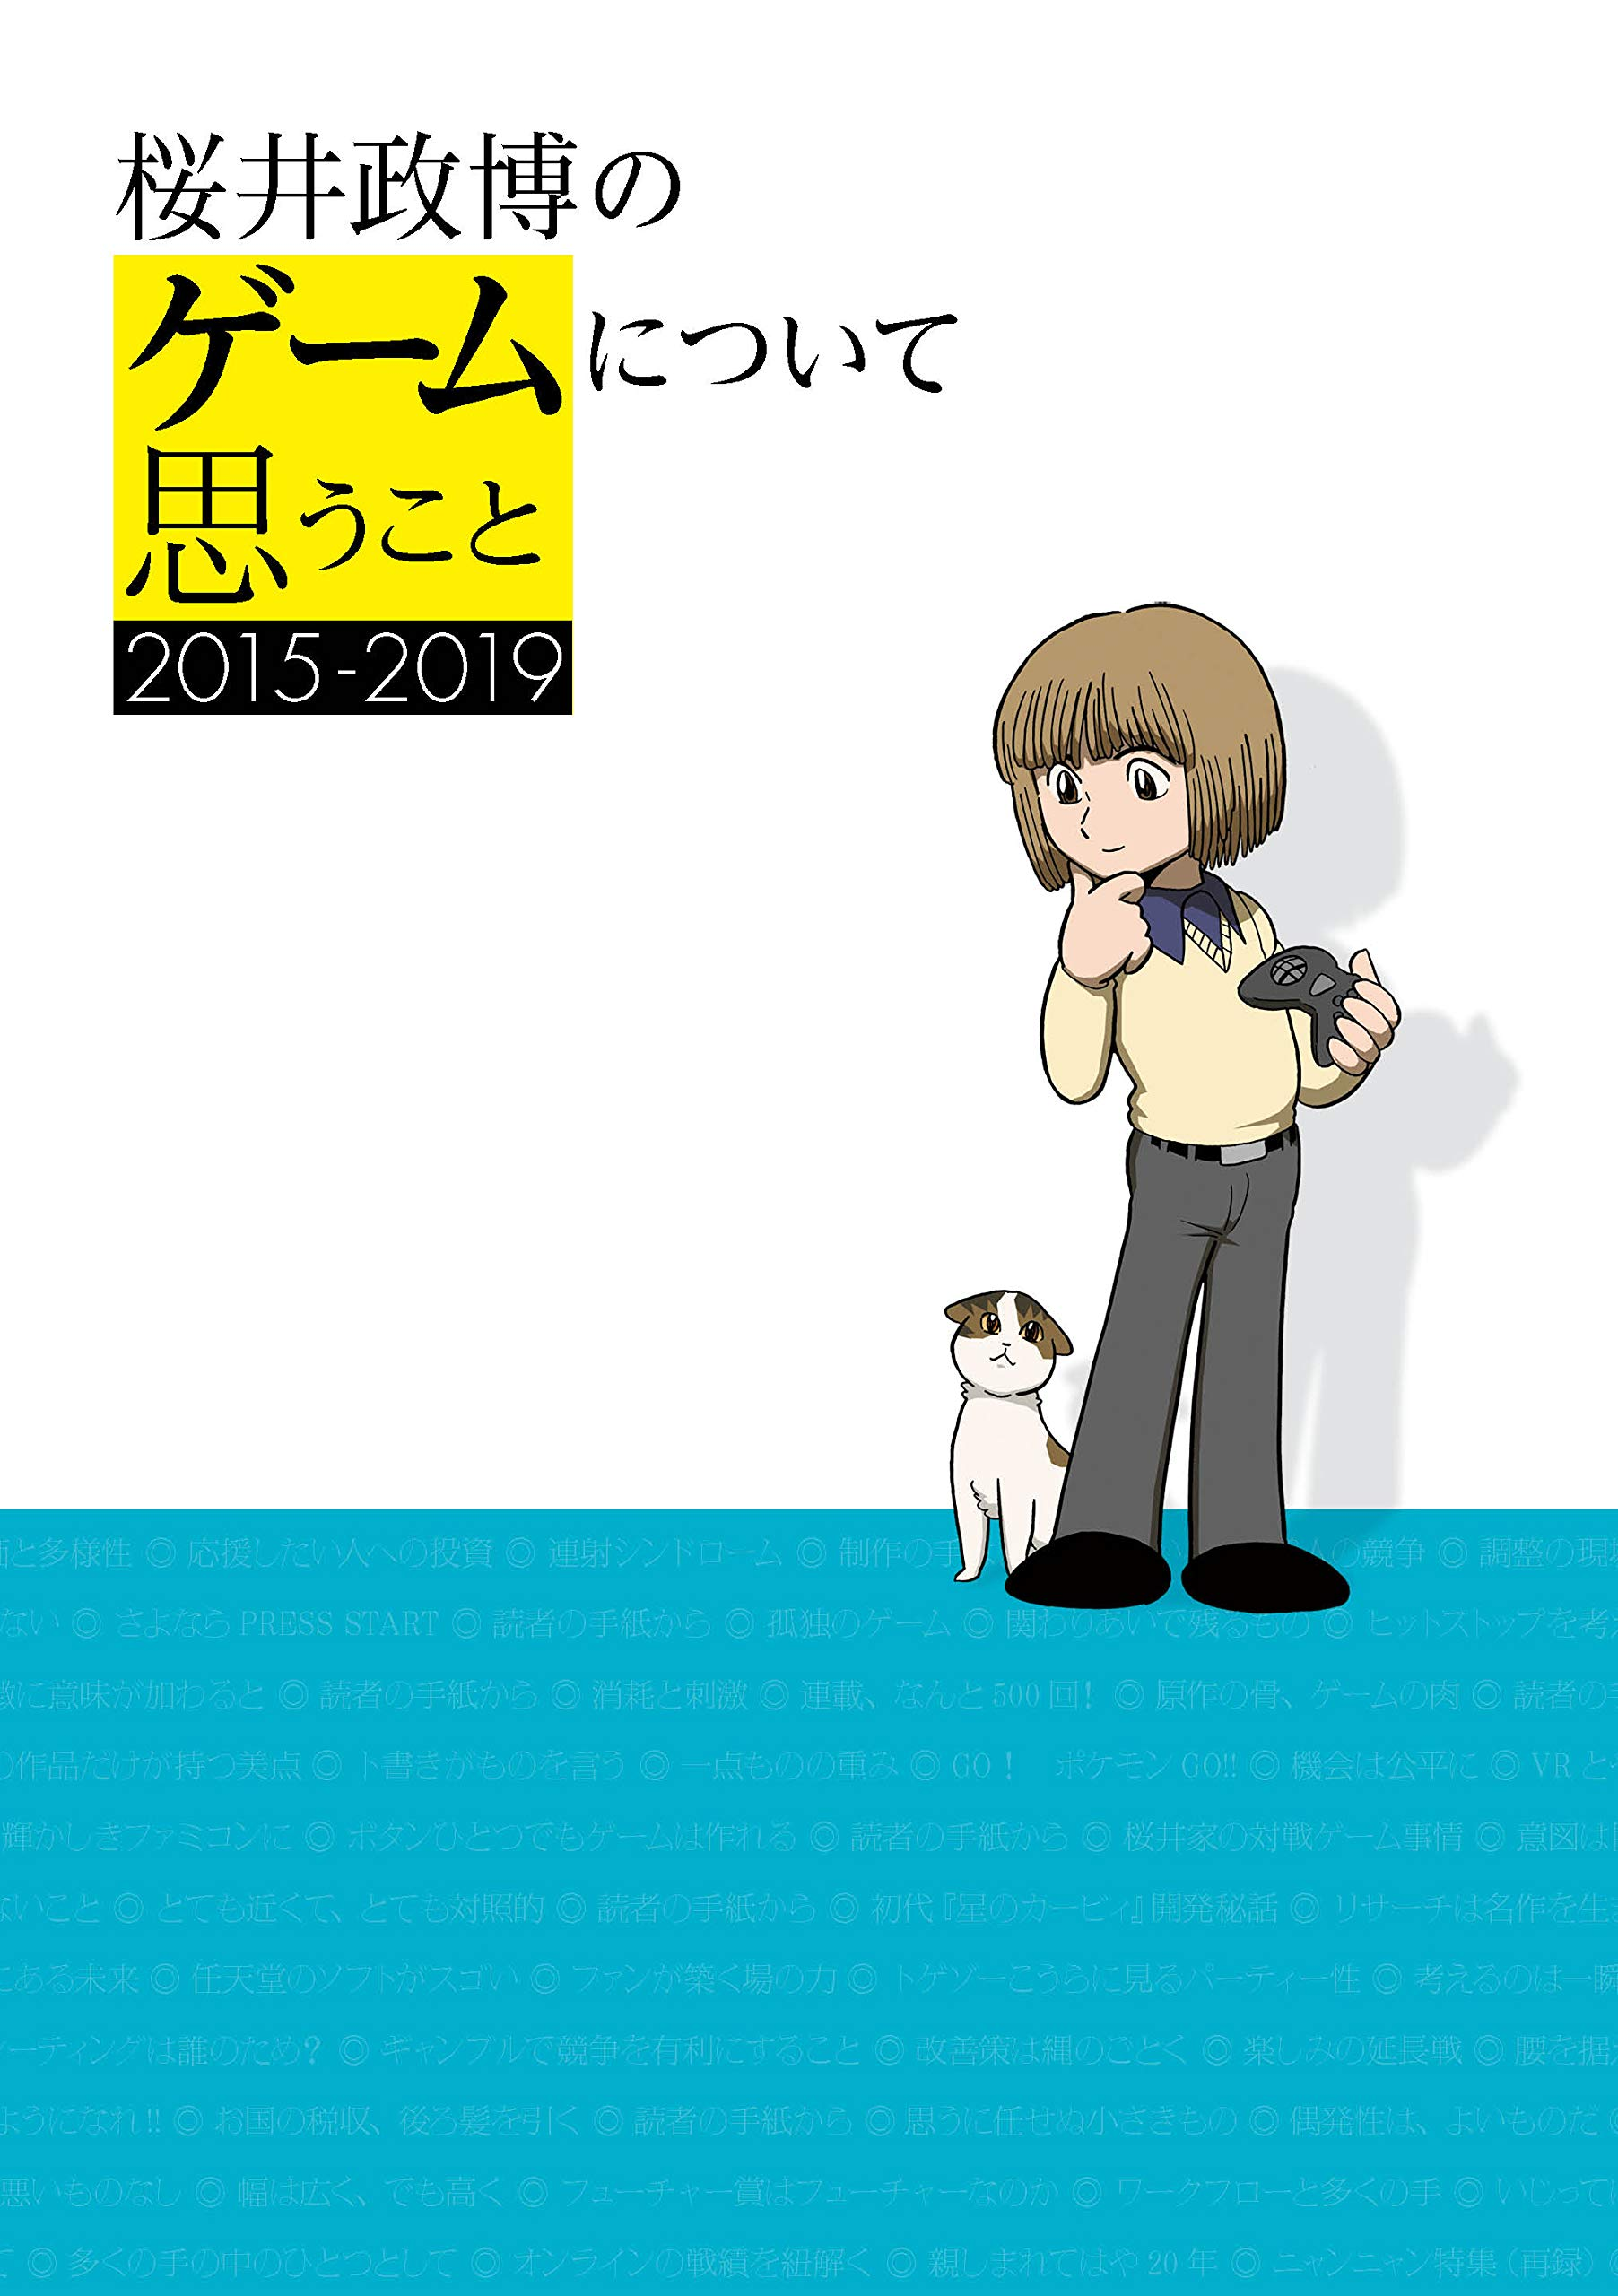 Sakurai's Collected Famitsu Works: 2015 to Feb. 2019 set for release in Japan